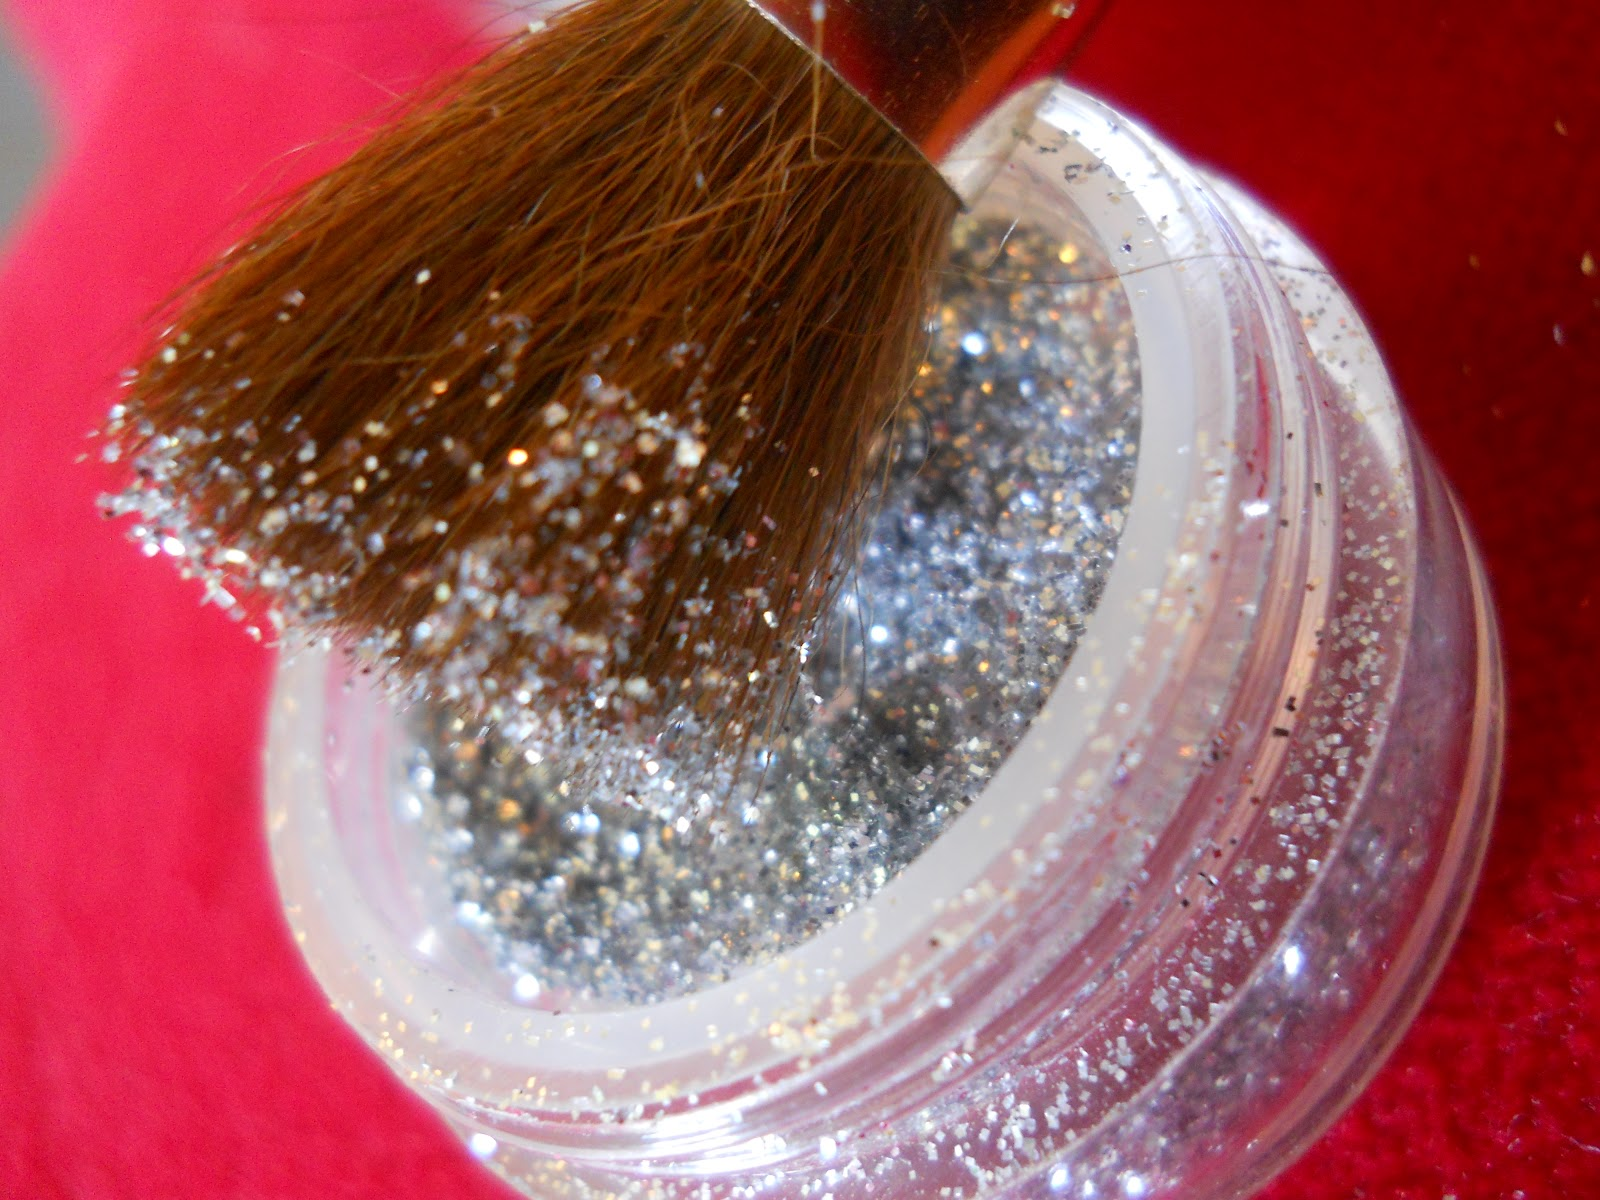 The brush will help the glitter fade out into a gradient on its own